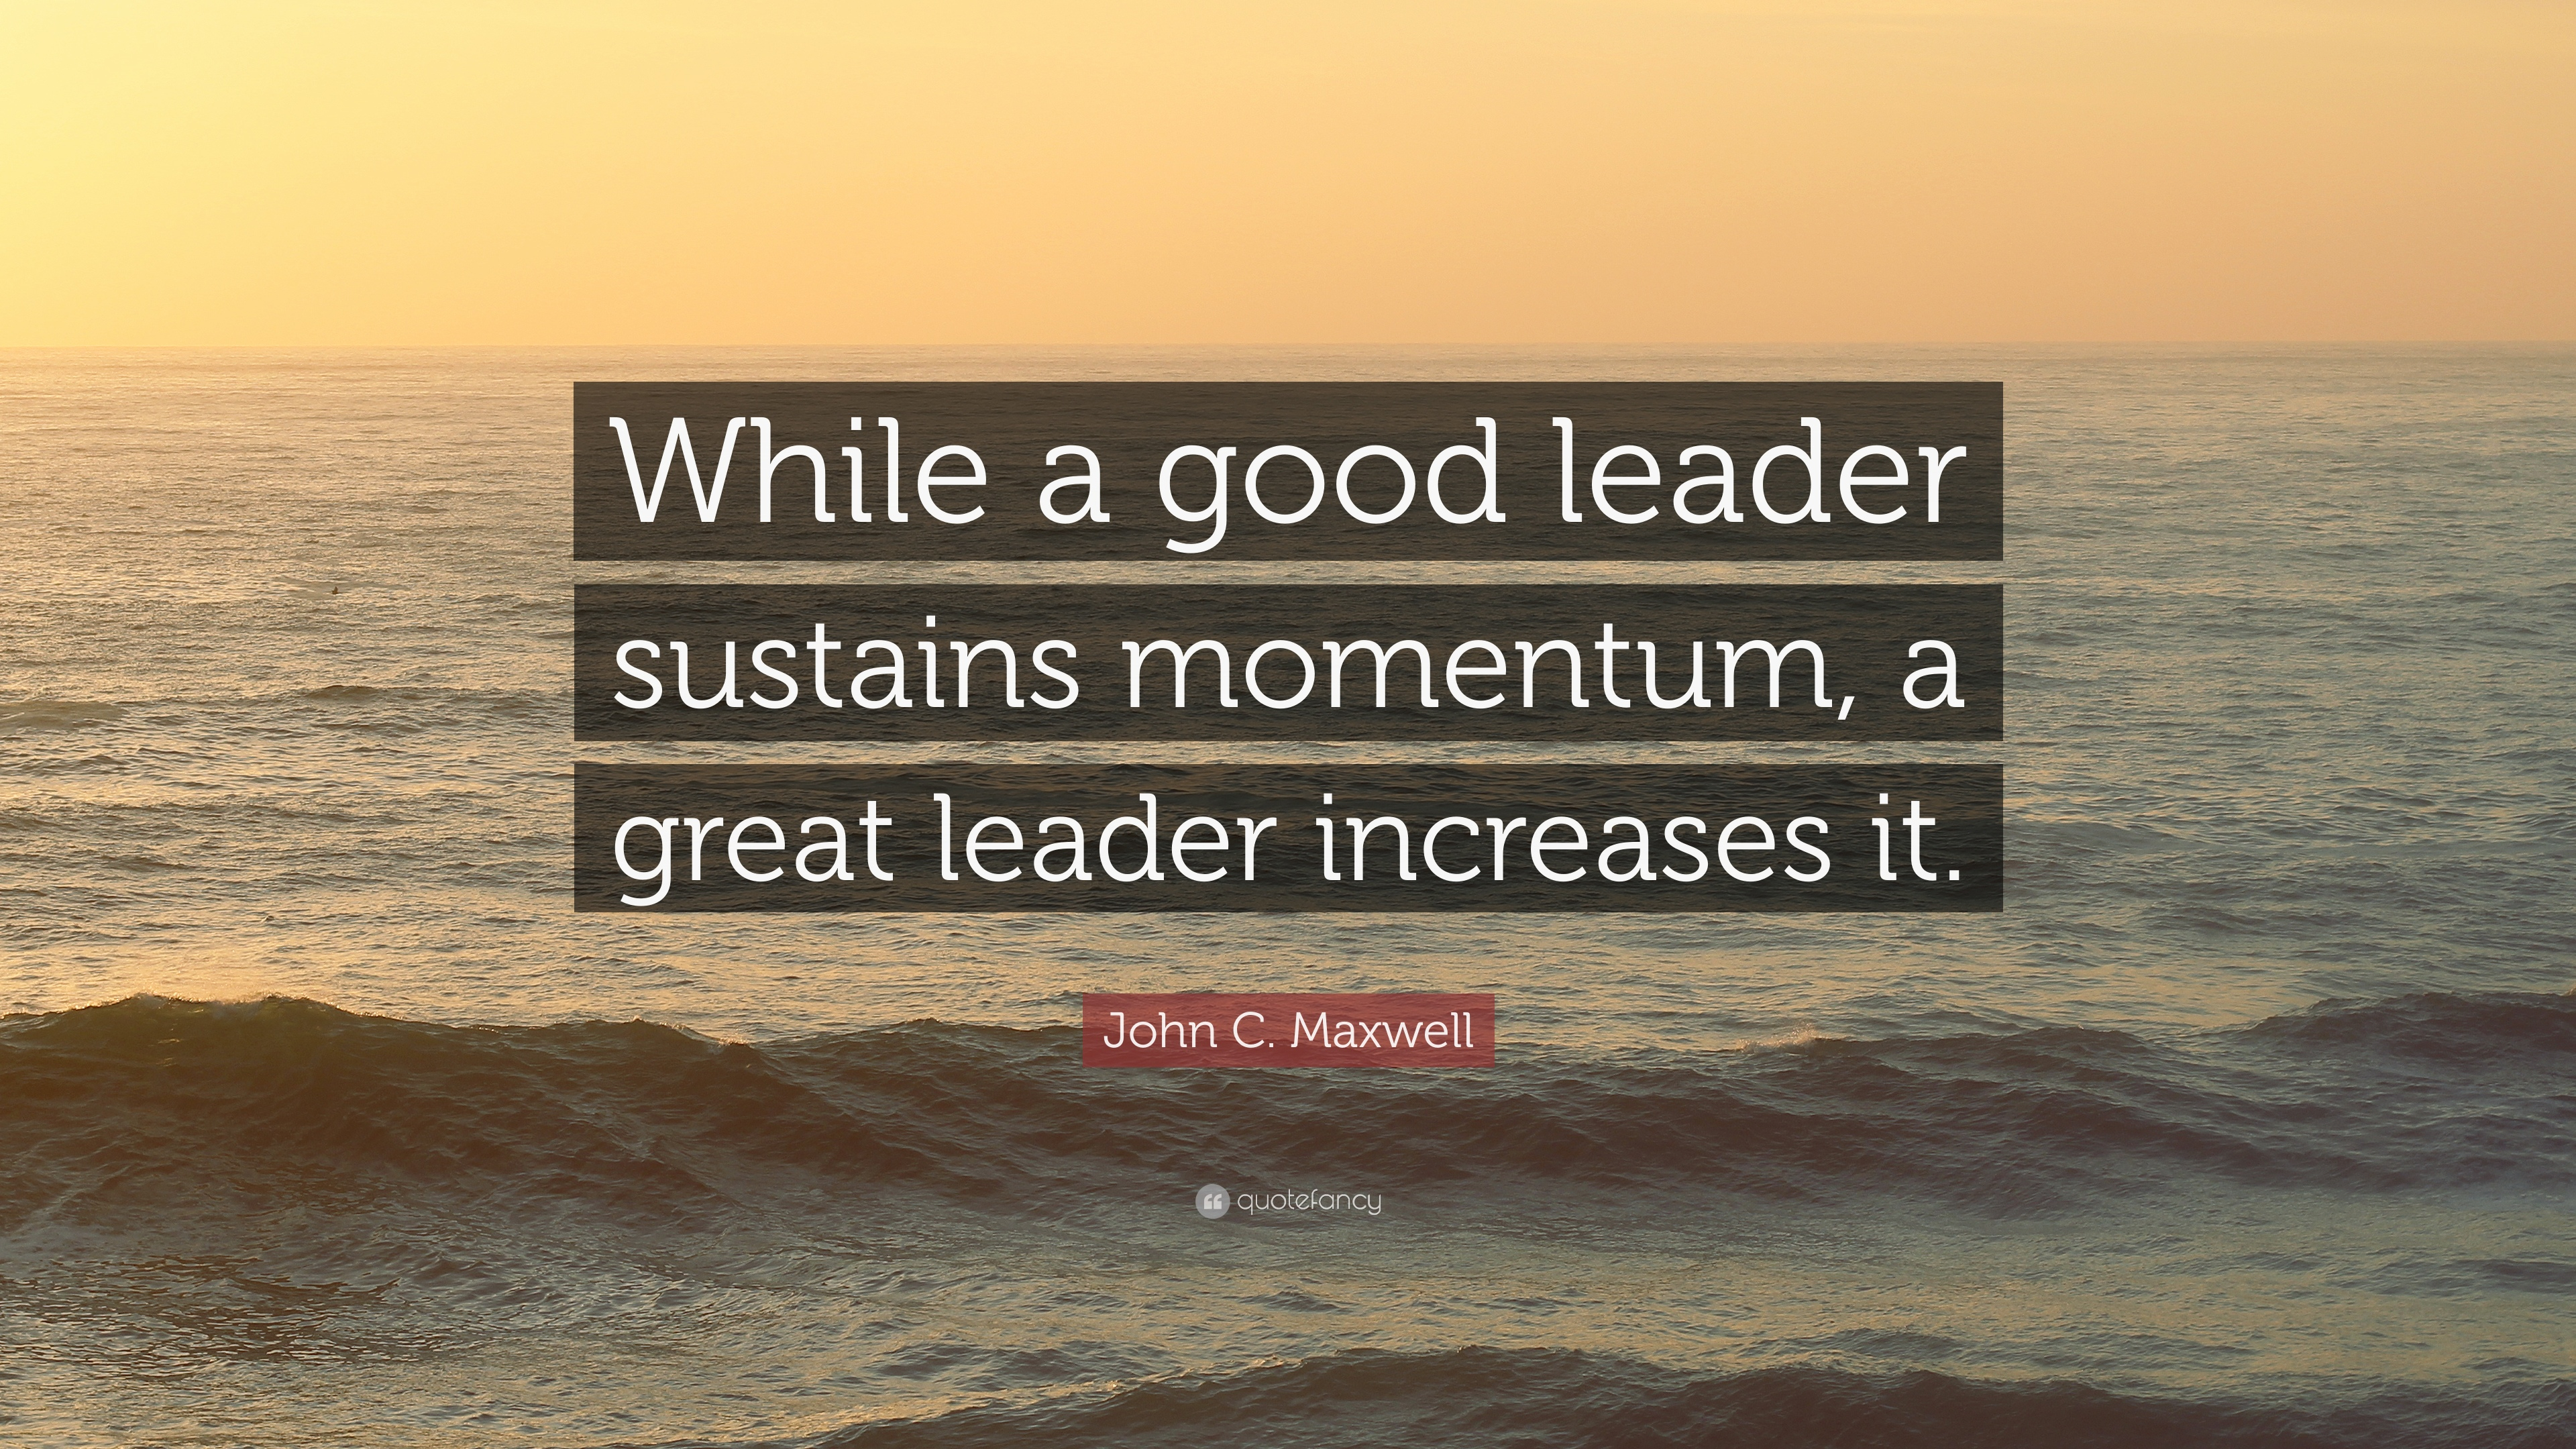 1718912-John-C-Maxwell-Quote-While-a-good-leader-sustains-momentum-a-great-1